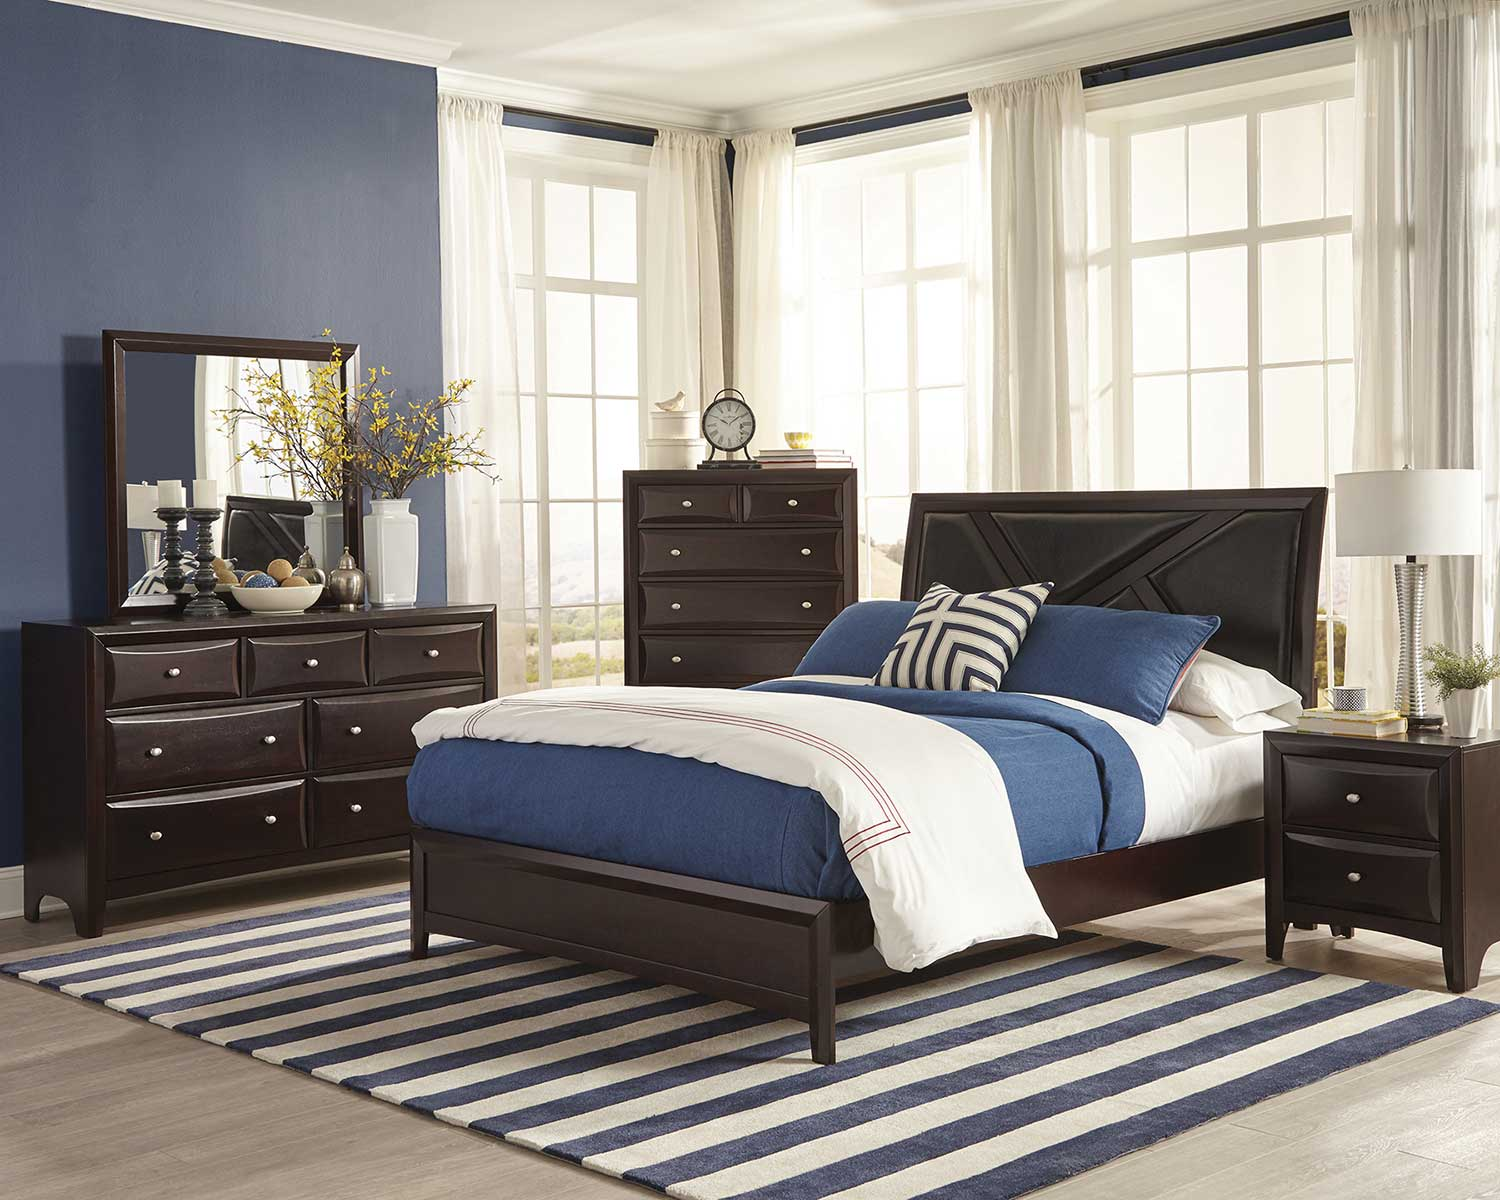 Coaster Rossville Upholstered Bedroom Set Cappuccino BEDROOM SET at